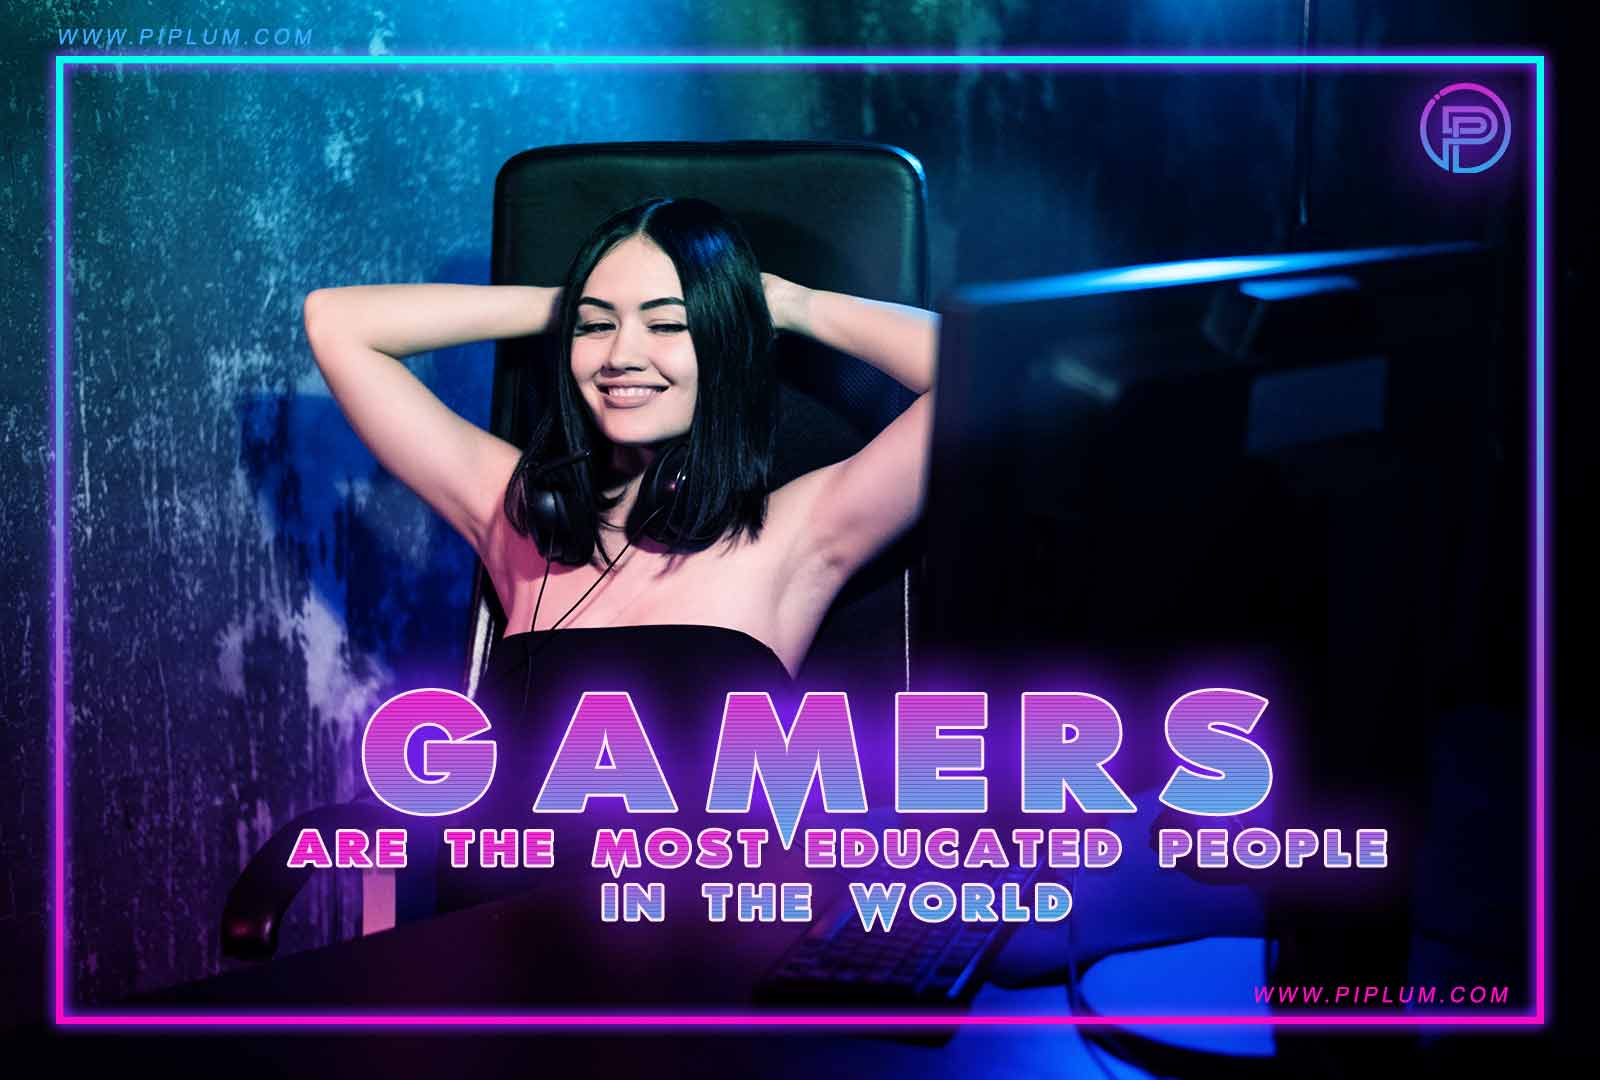 Gamers are the most educated people in the world. Funny gaming quote.